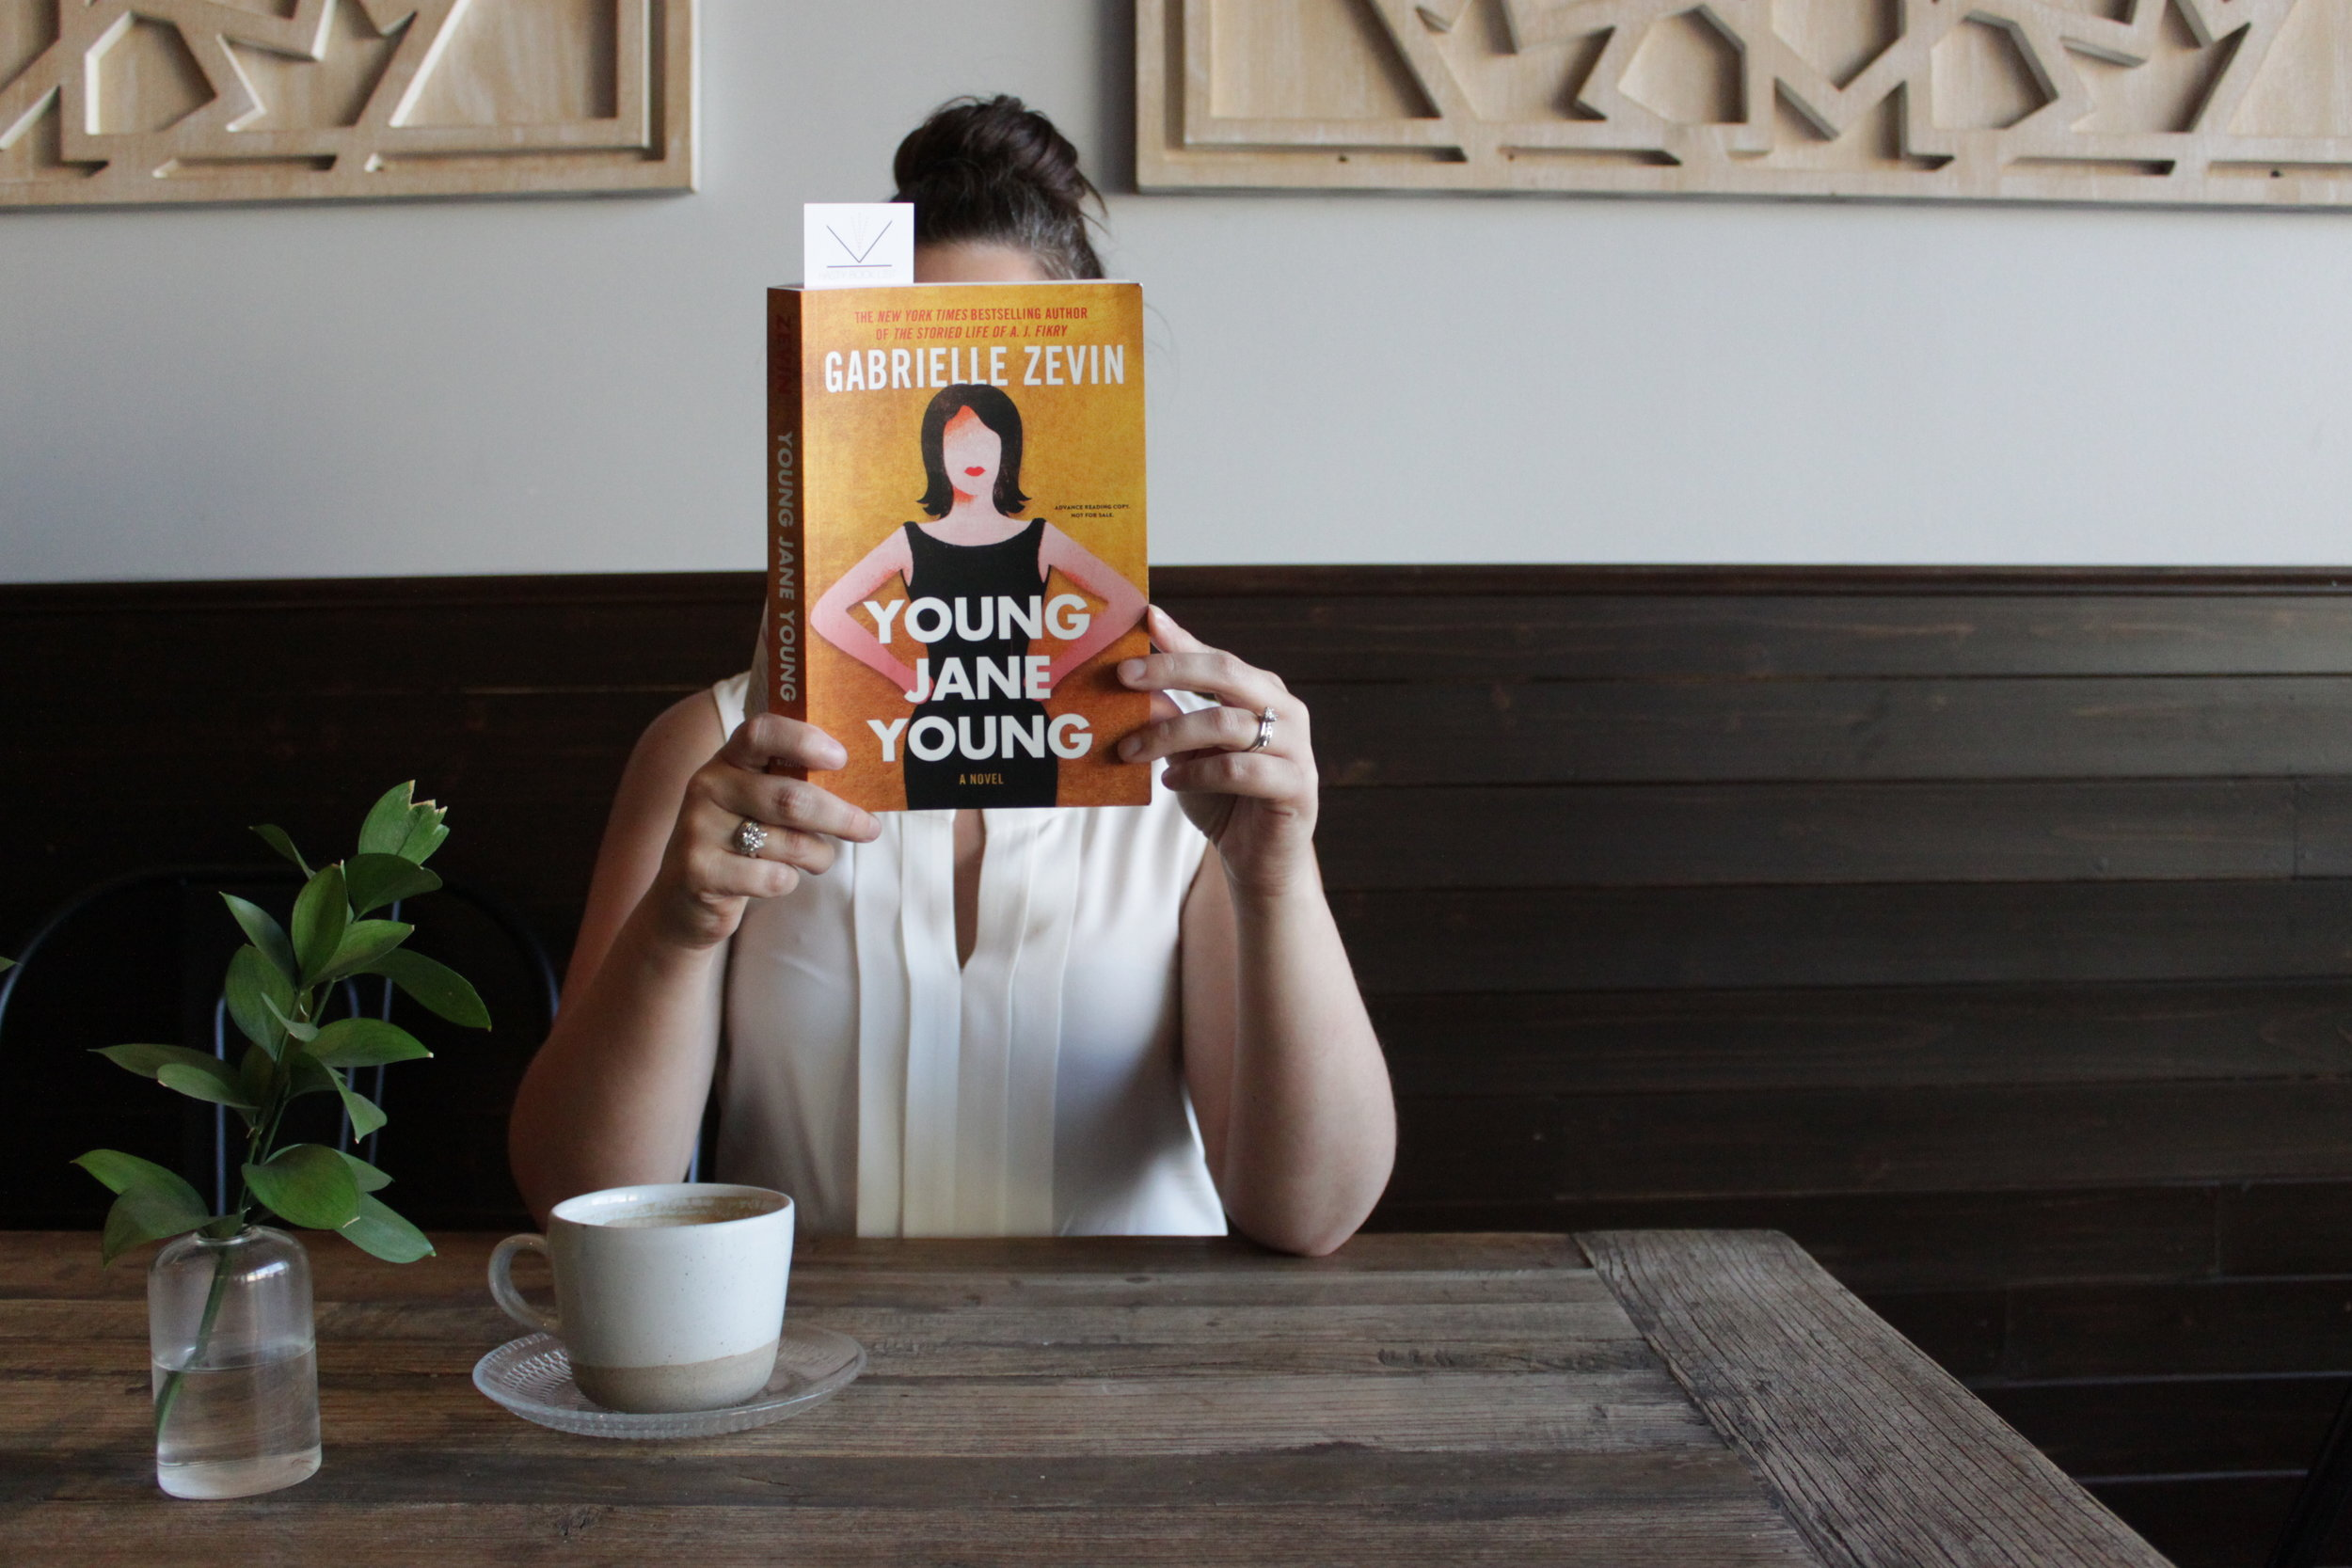 Reading Young Jane Young by Gabrielle Zevin at Ormo Cafe